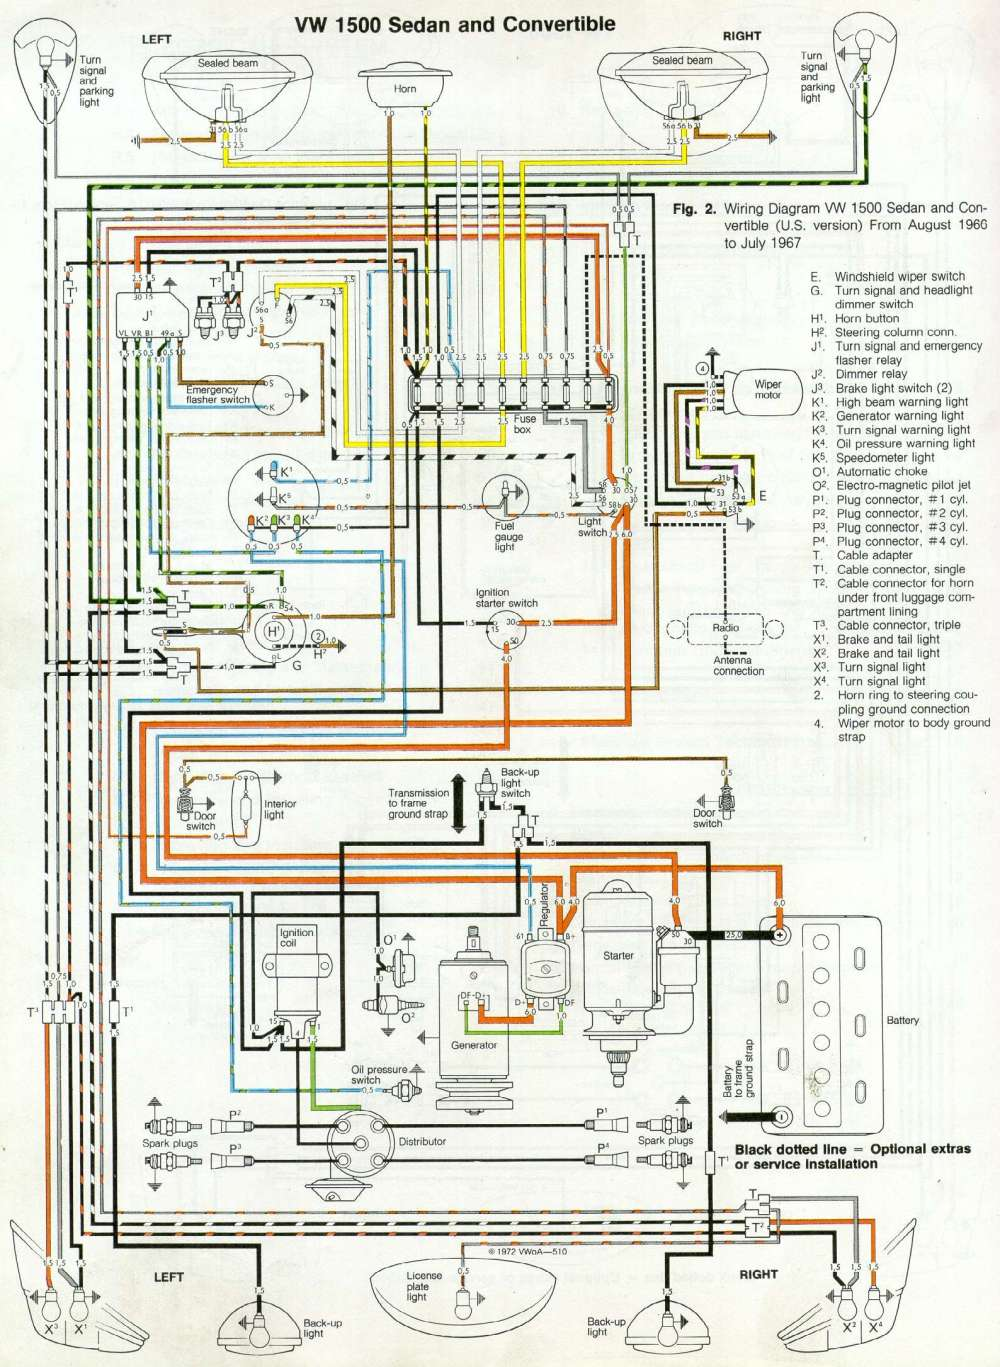 medium resolution of thesamba com type 1 wiring diagrams rh thesamba com vw wiring diagram symbols vw wiring diagrams